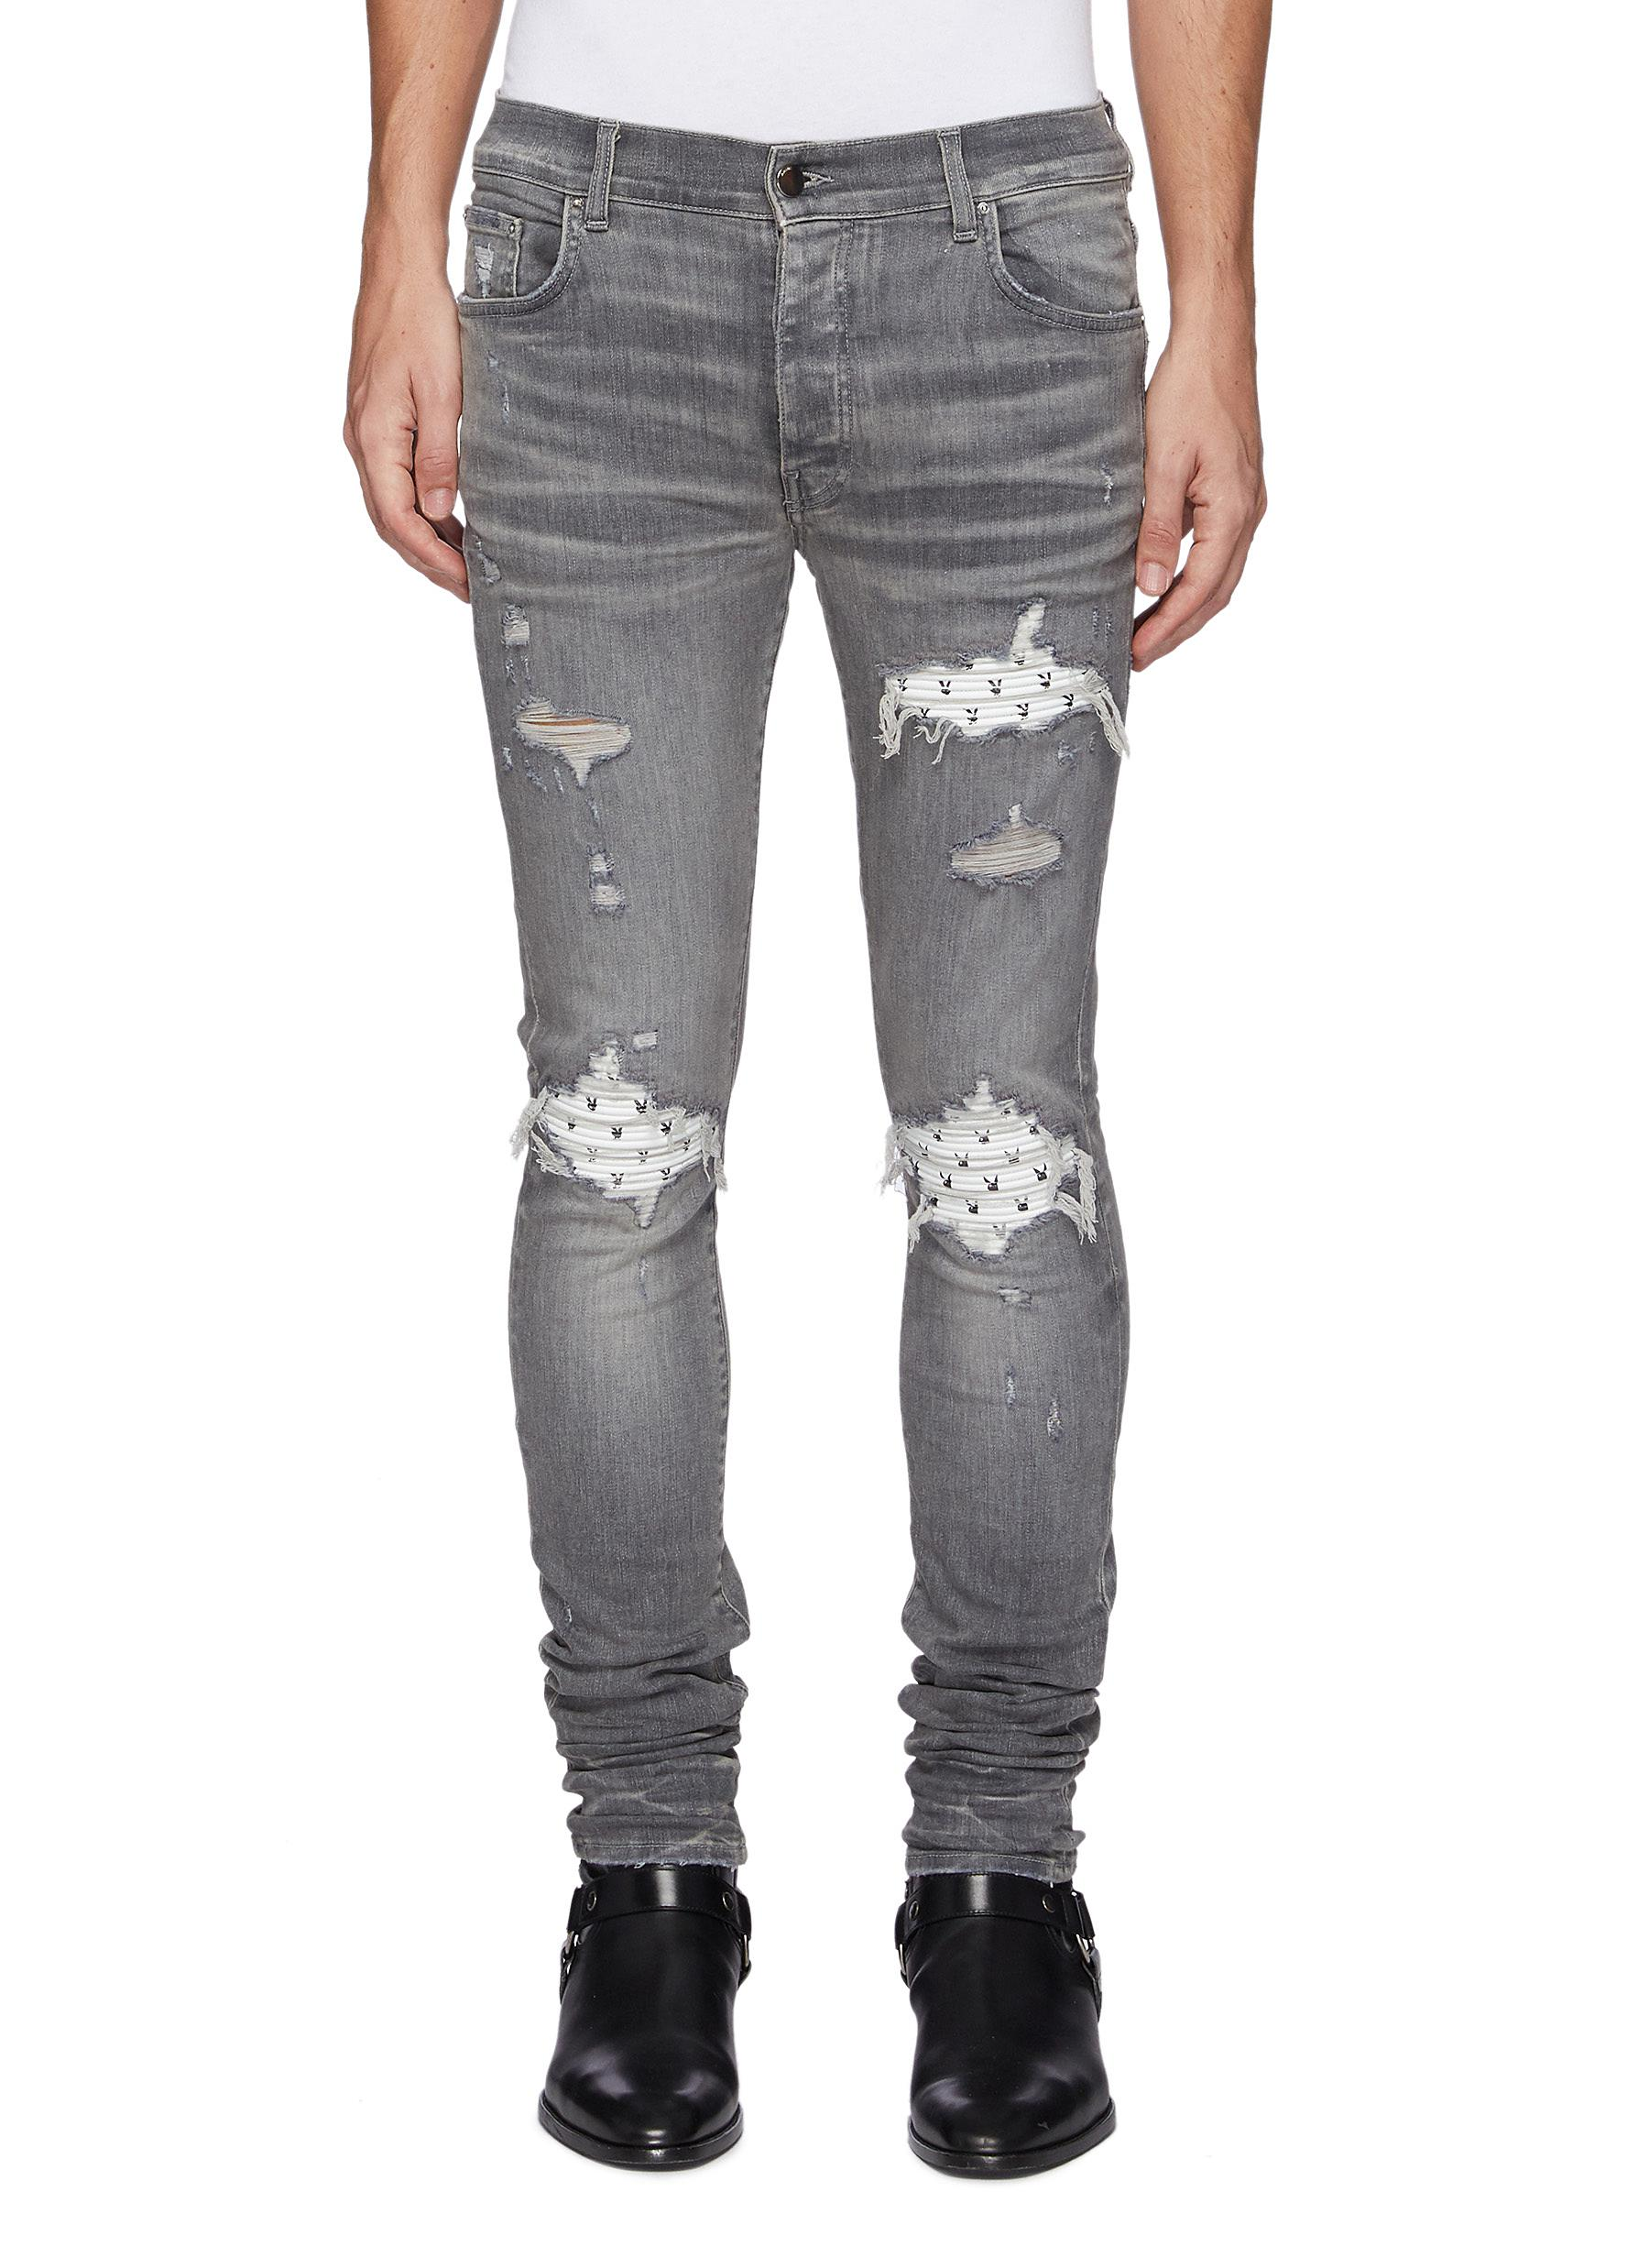 Playboy Ribbed Leather Panel Ripped Washed Jeans